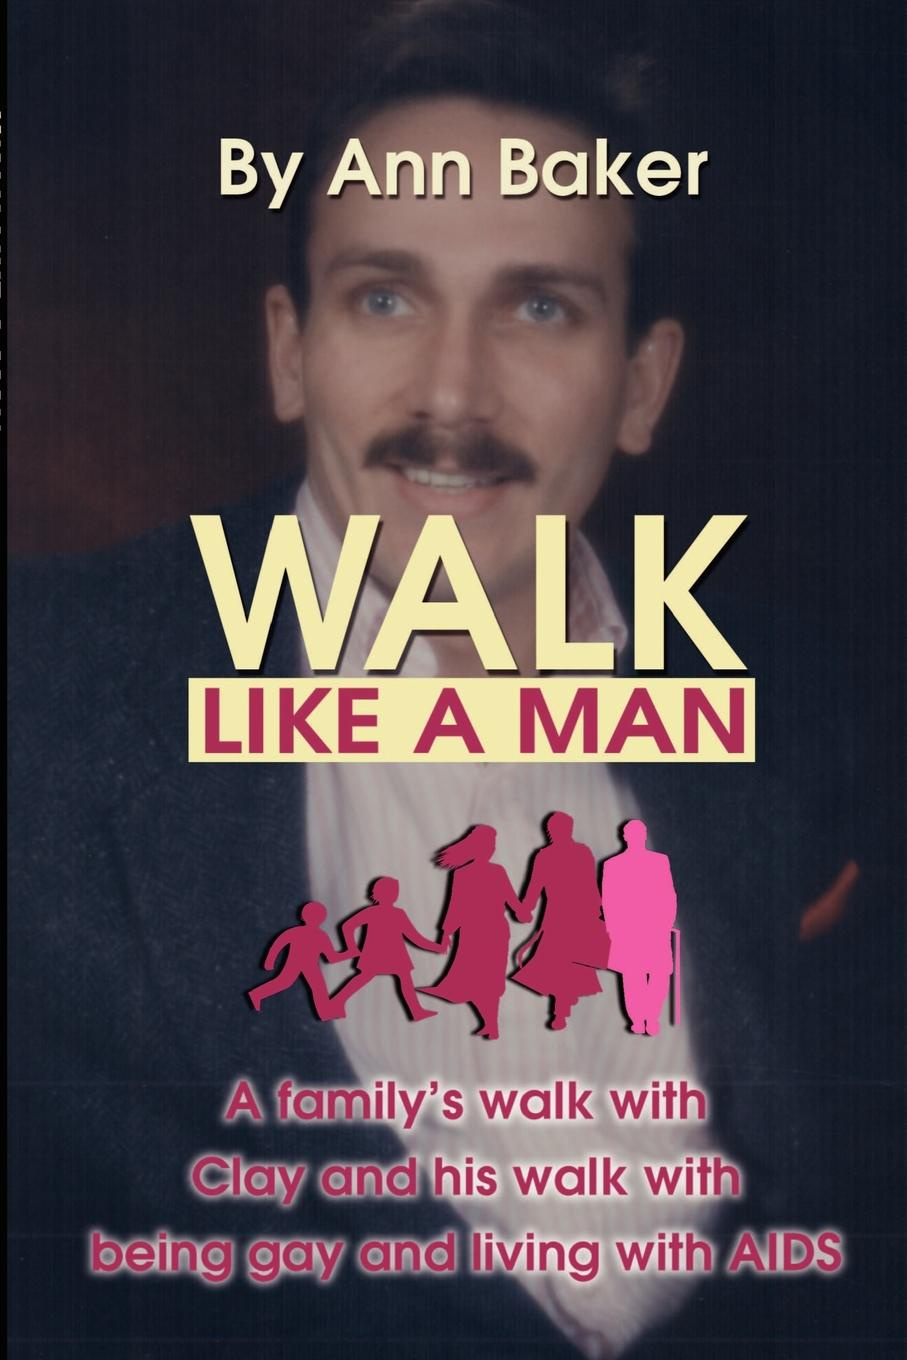 Patricia A. Baker Walk Like a Man. A Family's Walk with Clay and His Walk with Being Gay and Living with AIDS lole шорты walk 2 walk